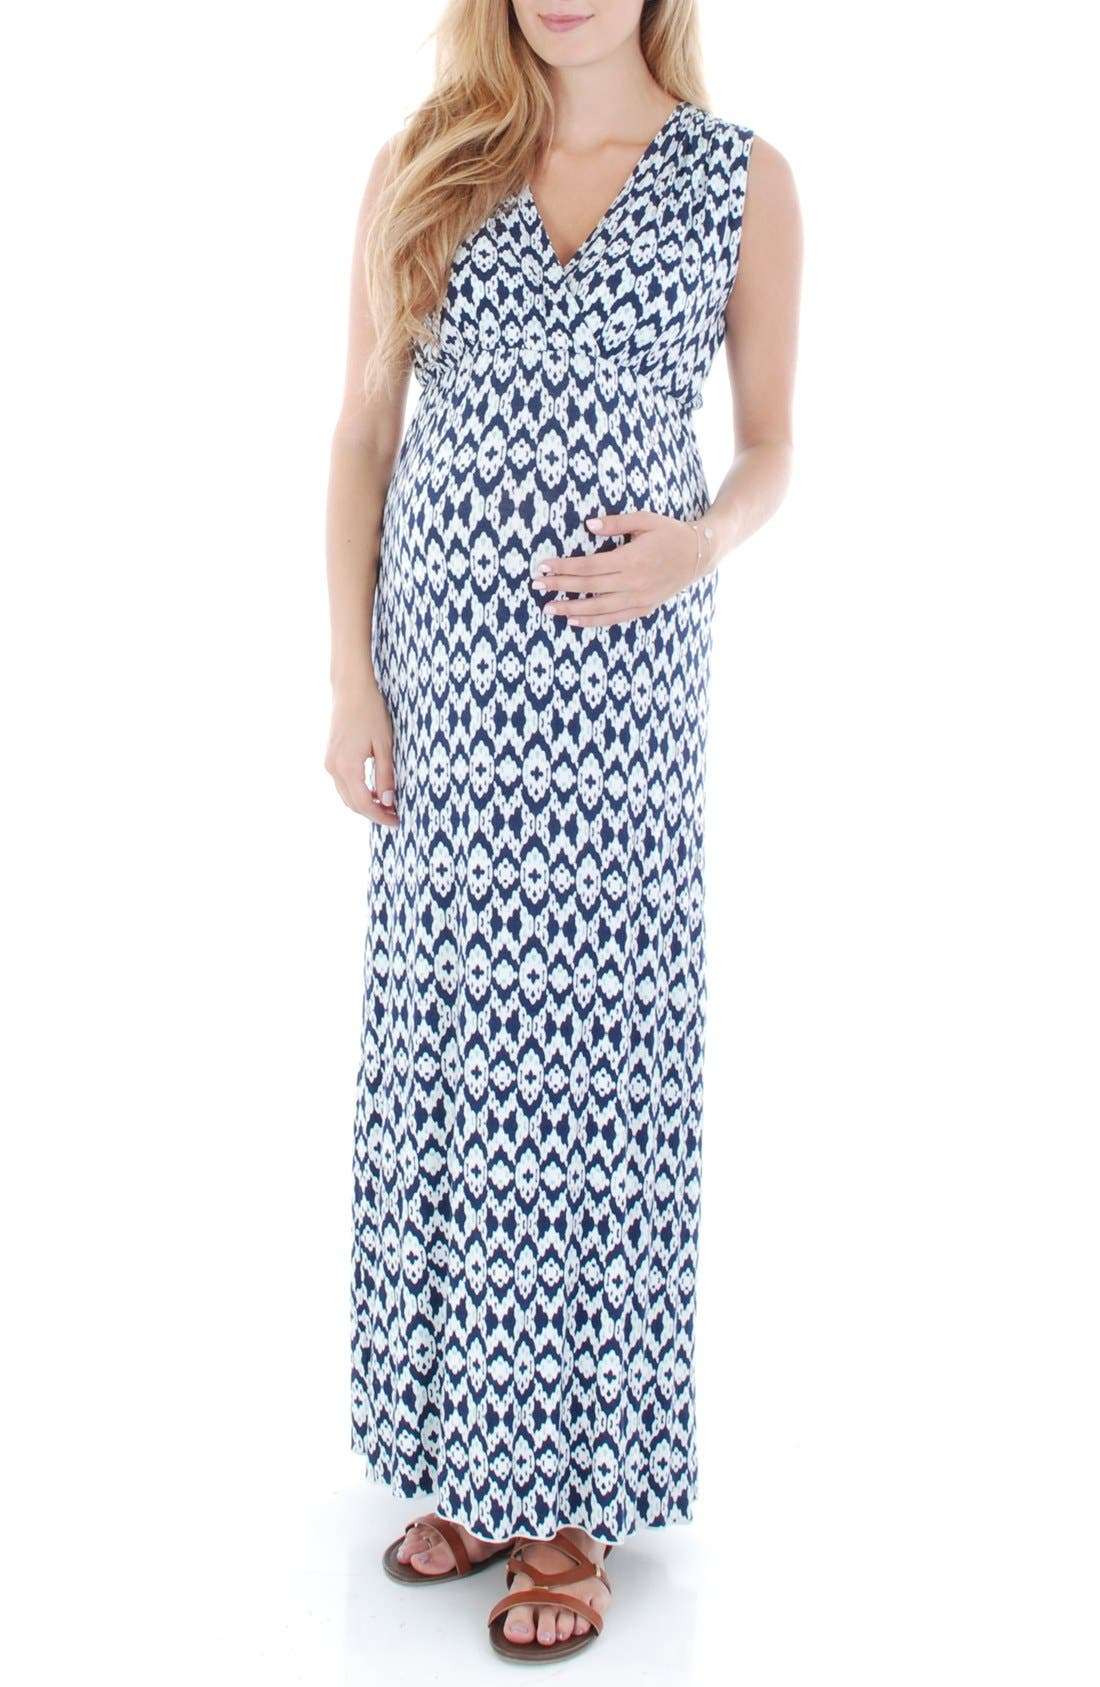 Main Image - Everly Grey 'Jill' Maternity Maxi Dress